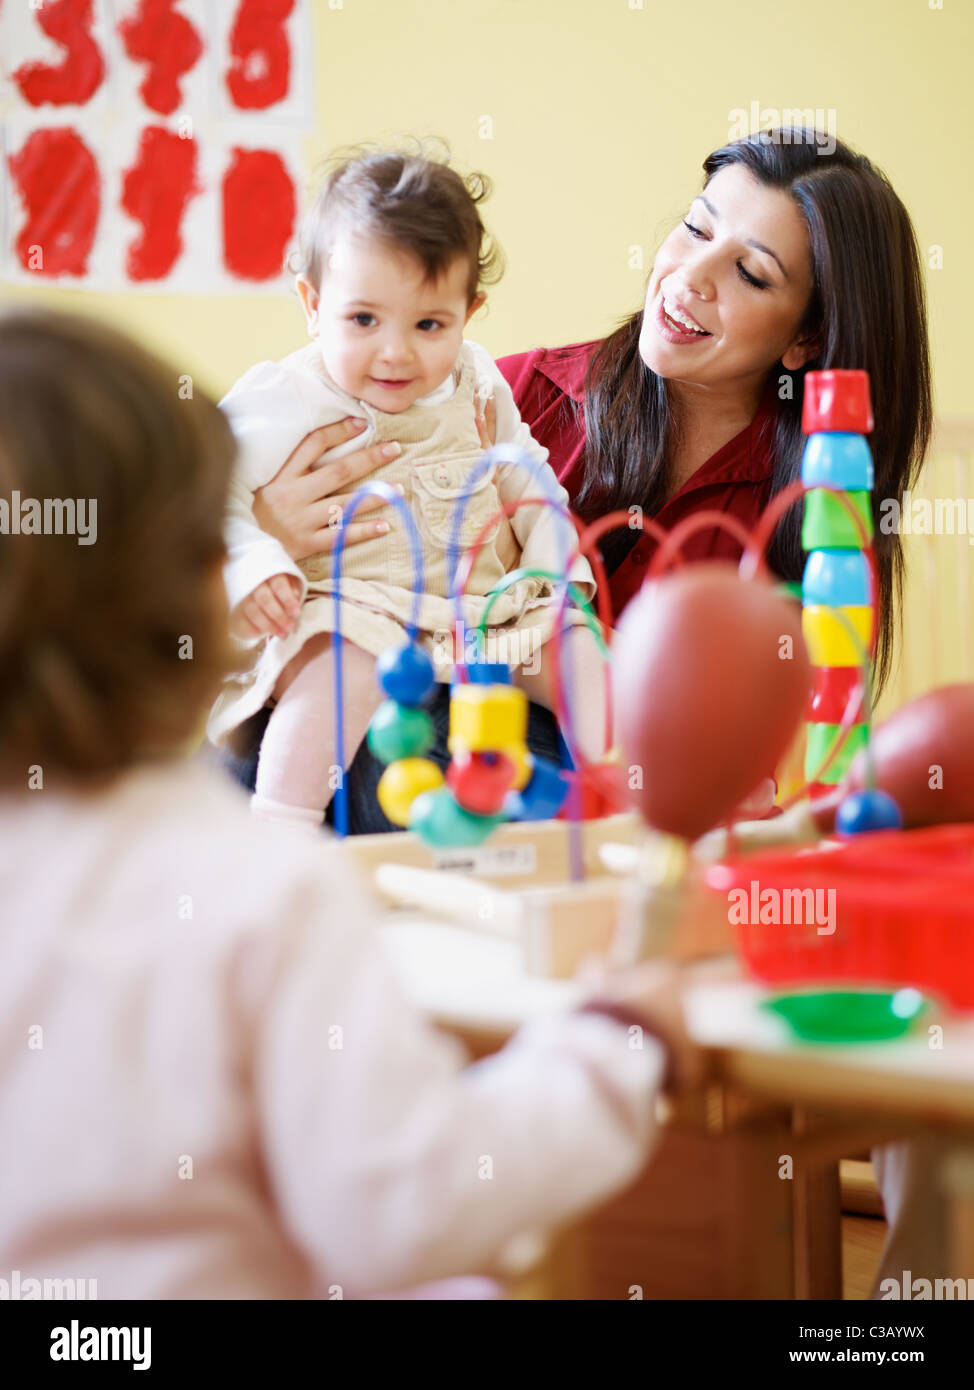 female toddler and 2-3 years girl playing with maraca in kindergarten. Vertical shape - Stock Image